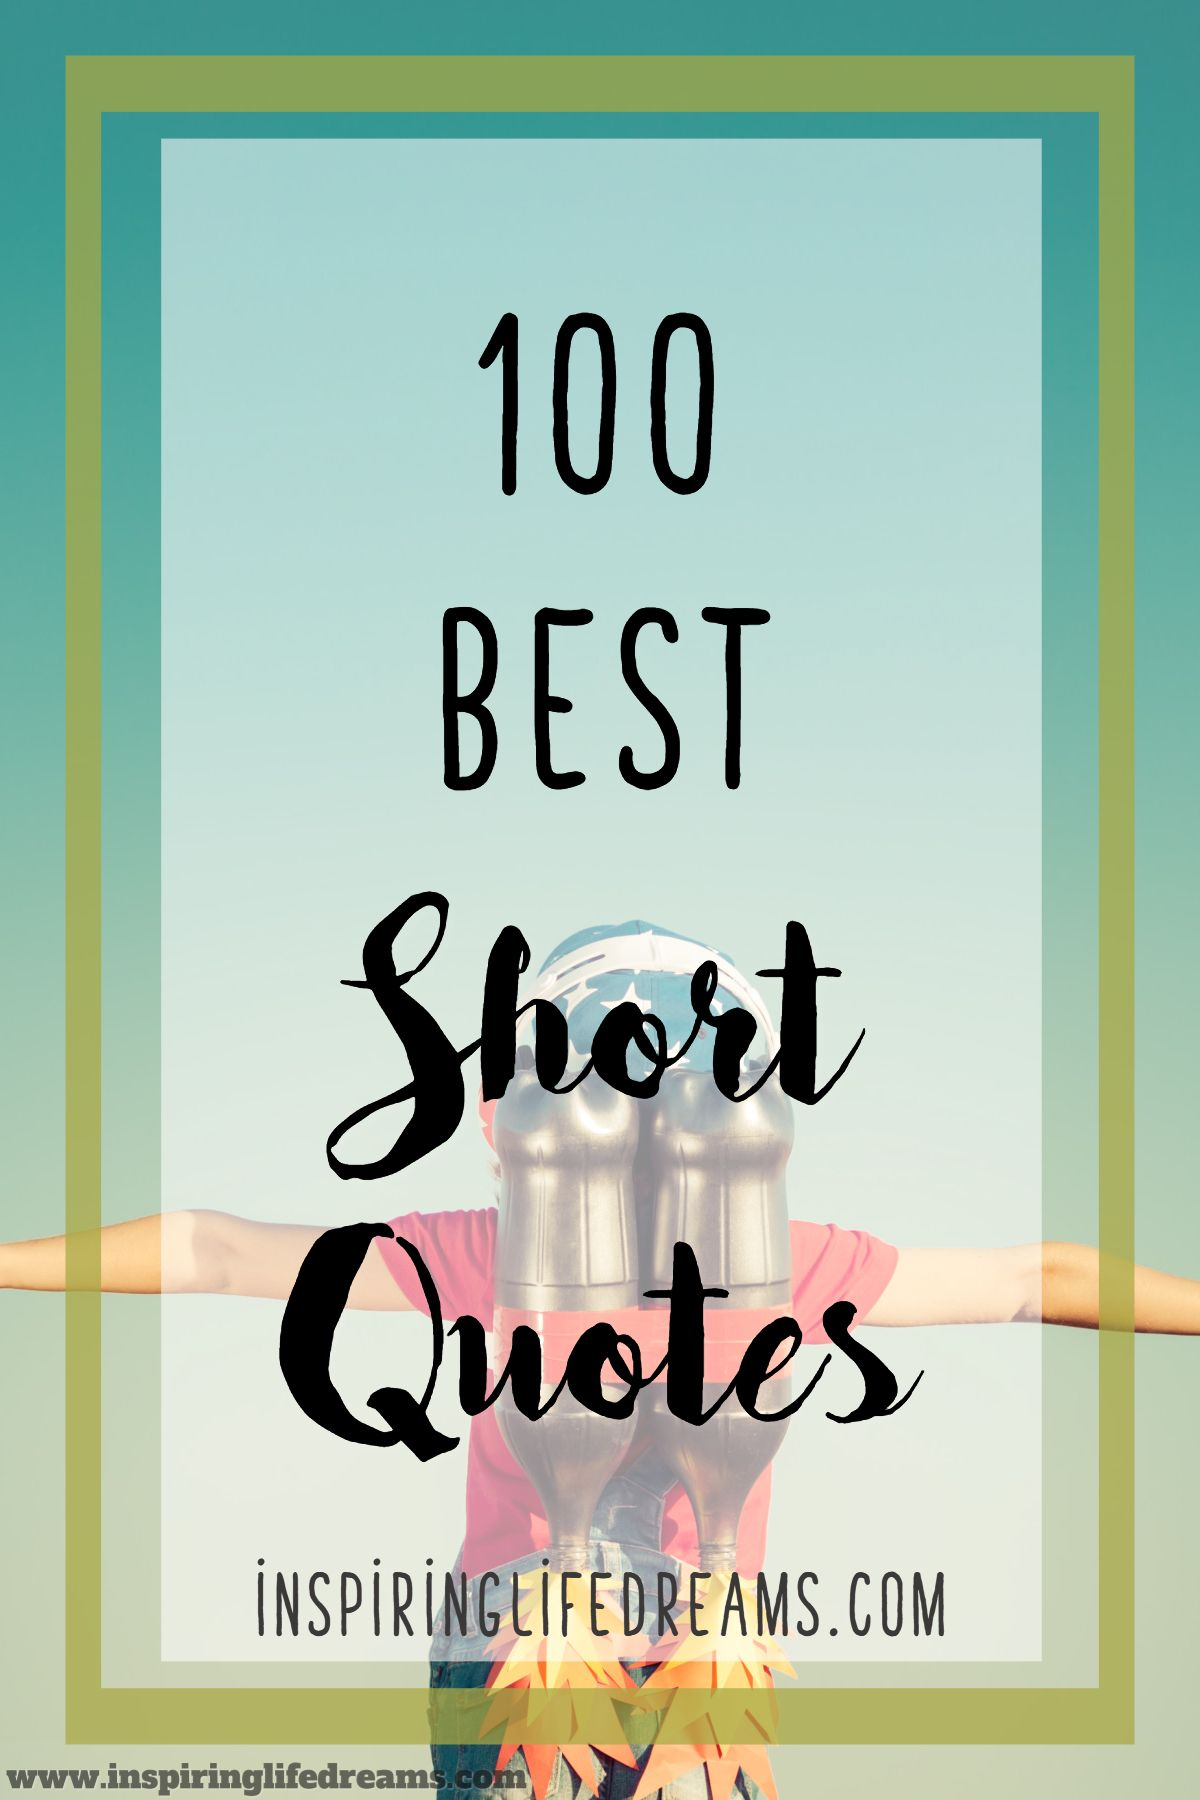 30+ Inspirational Quotes For Teens About Life With Images ... |Short Positive Quotes For Teens